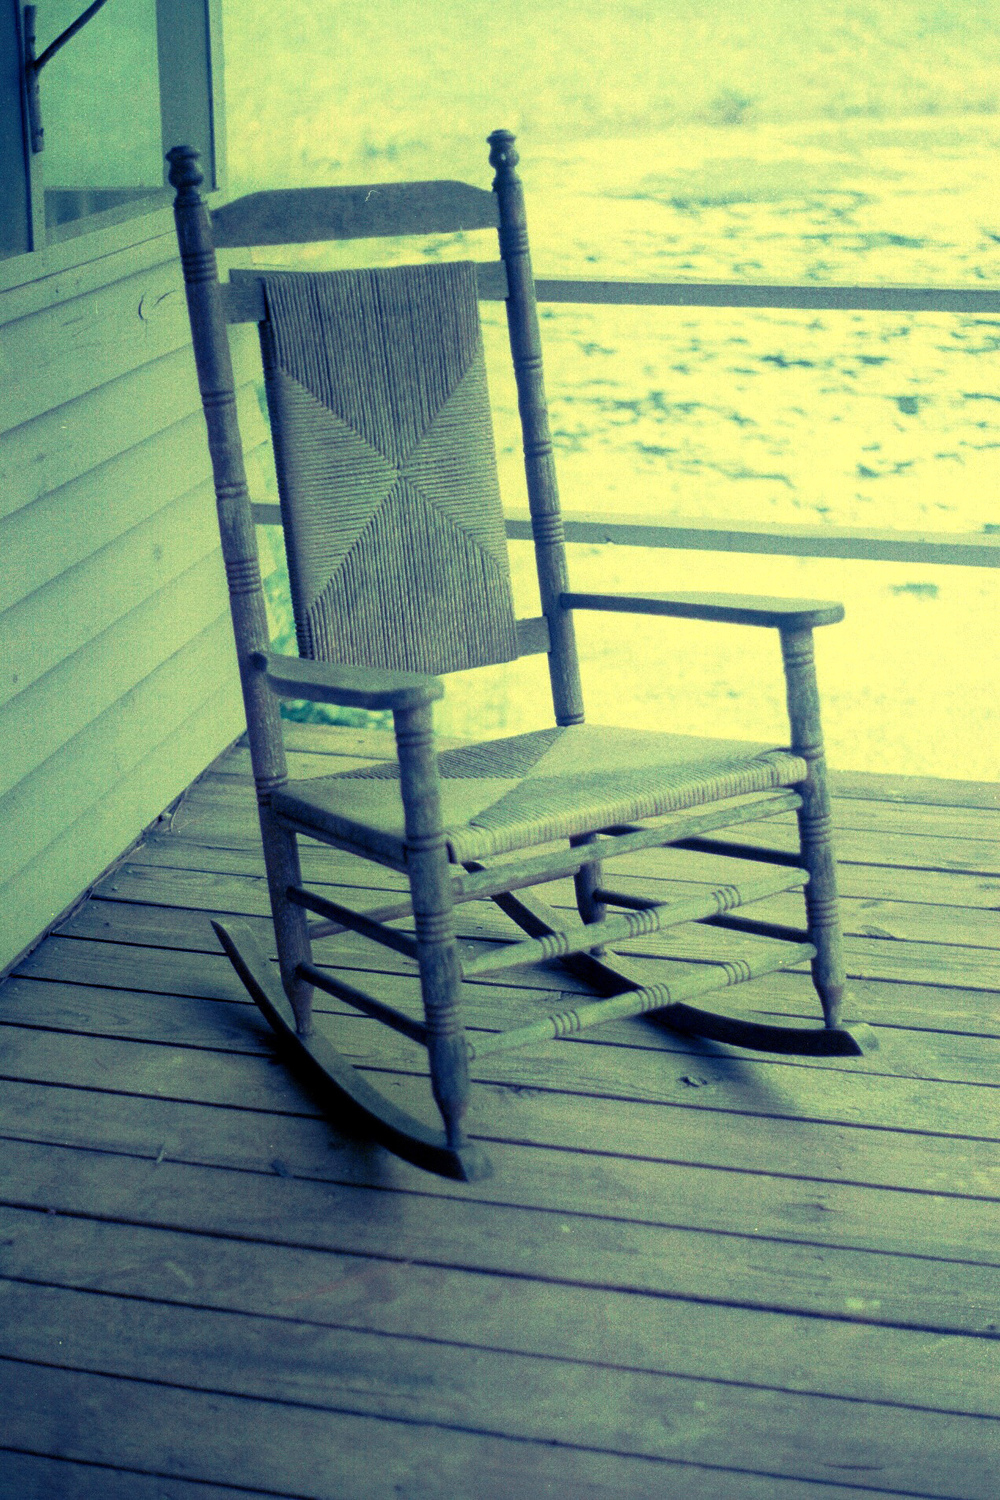 rocking_chair_35mm_film